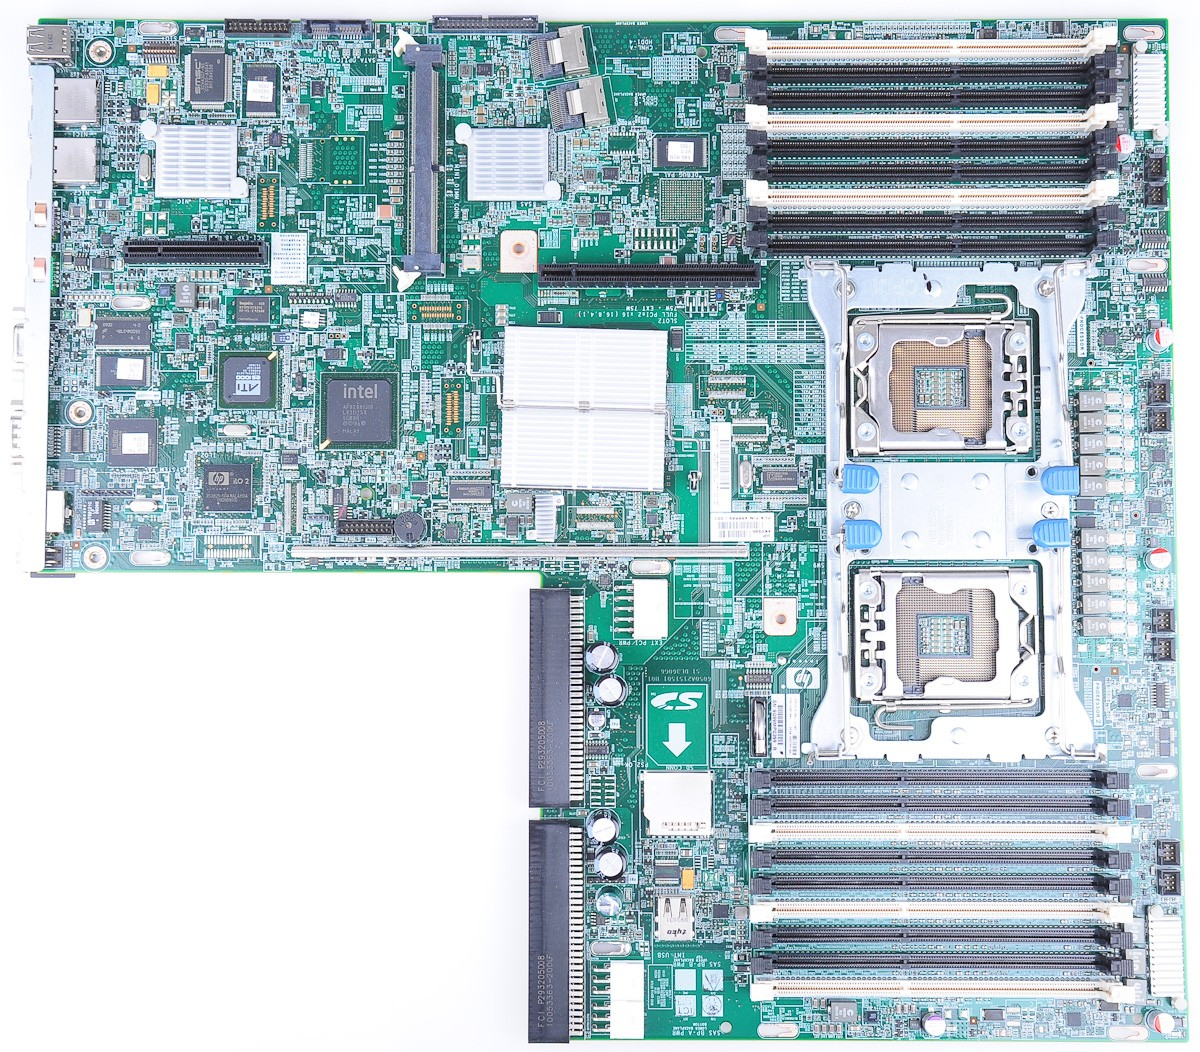 Details about Hp Motherboard/System Board Proliant DL360 G6 493799-001